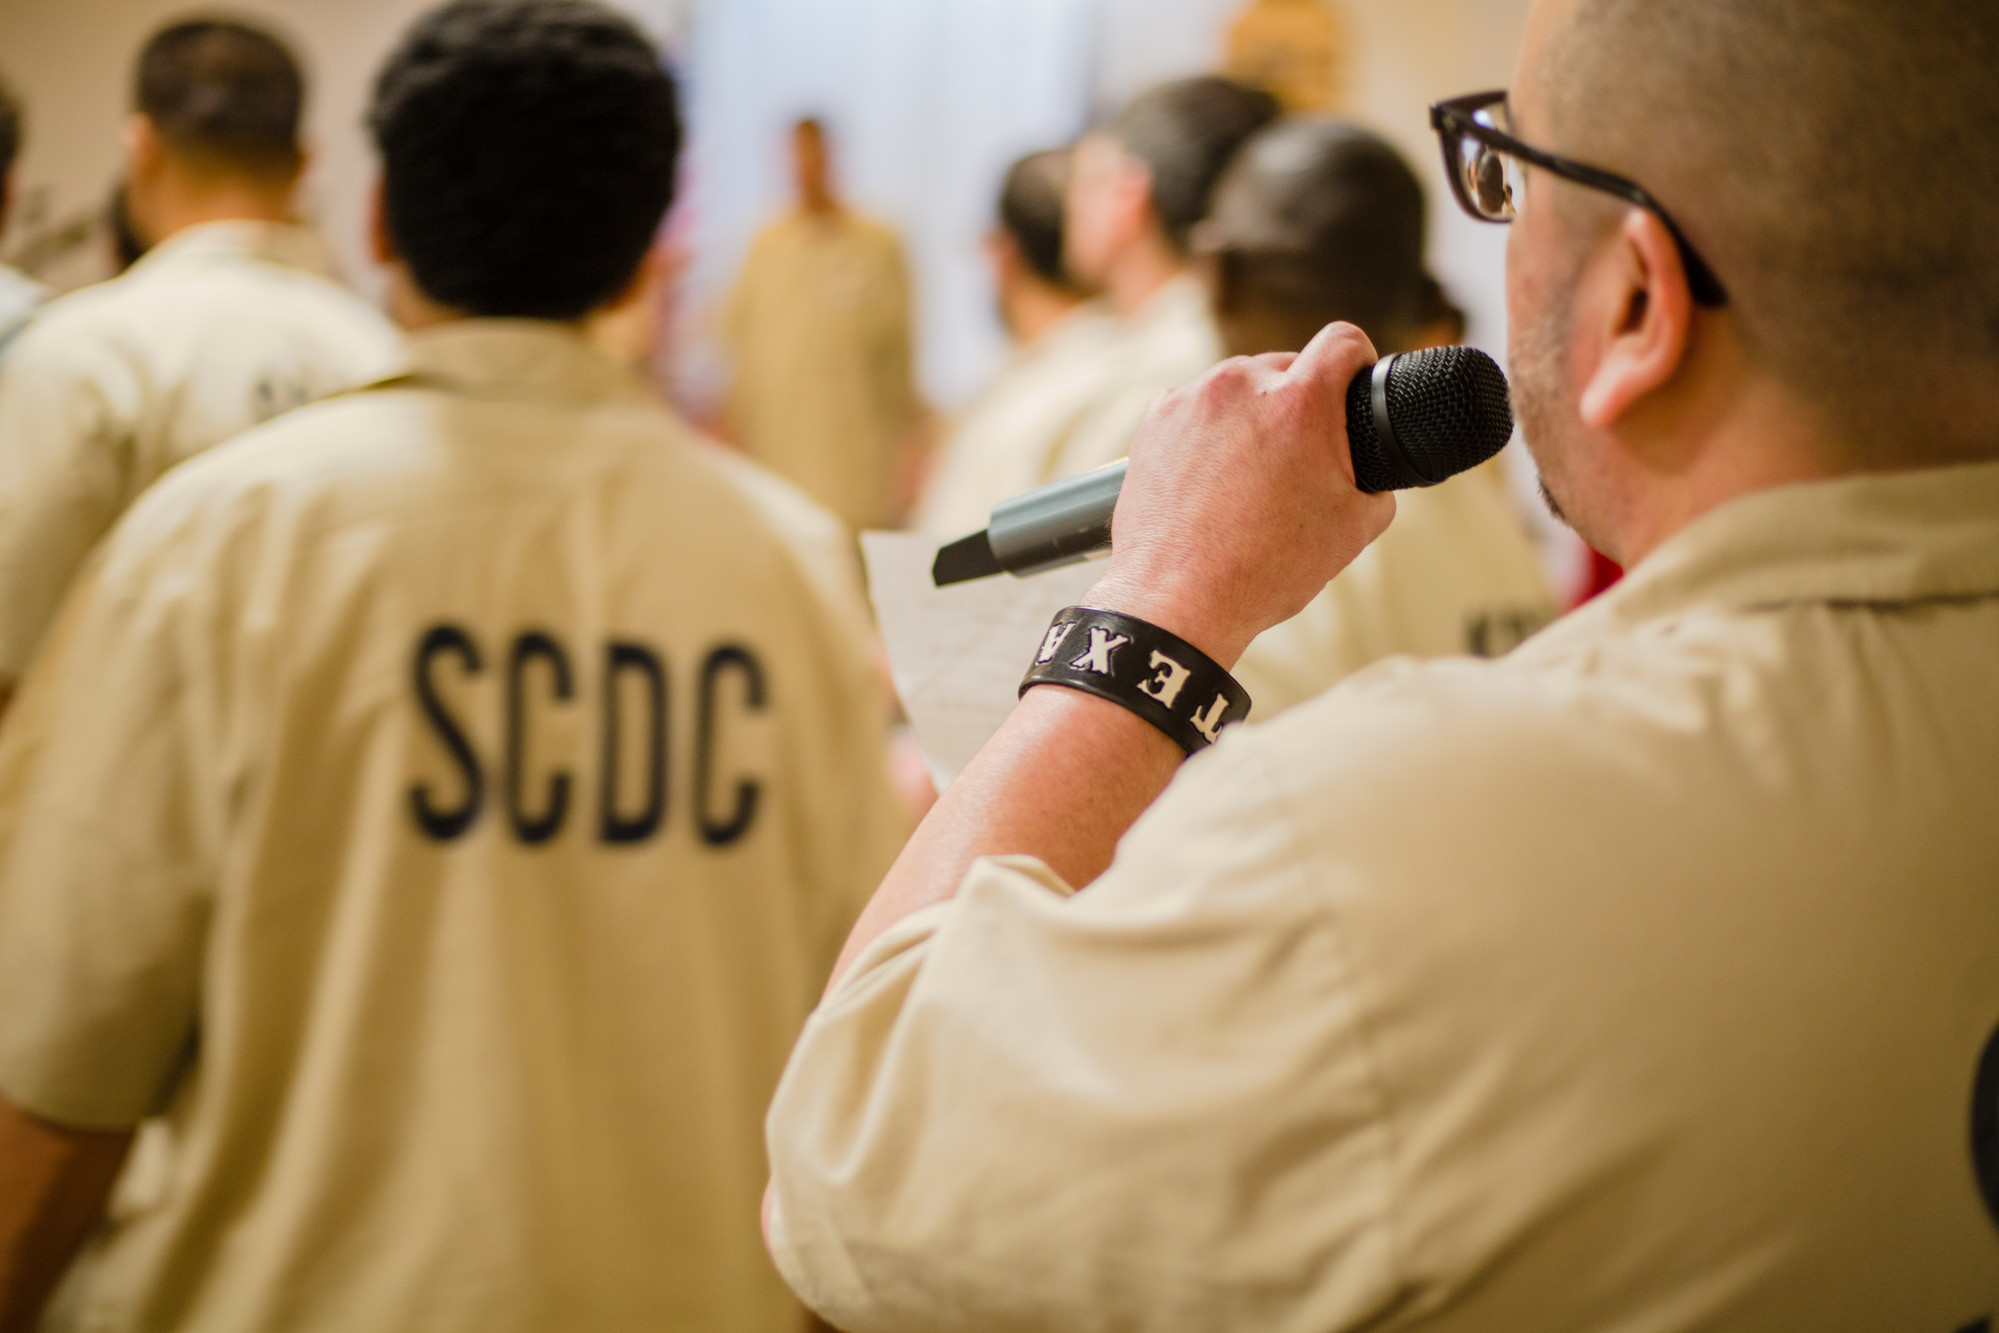 A Lee Correctional Institution inmate sings with others.